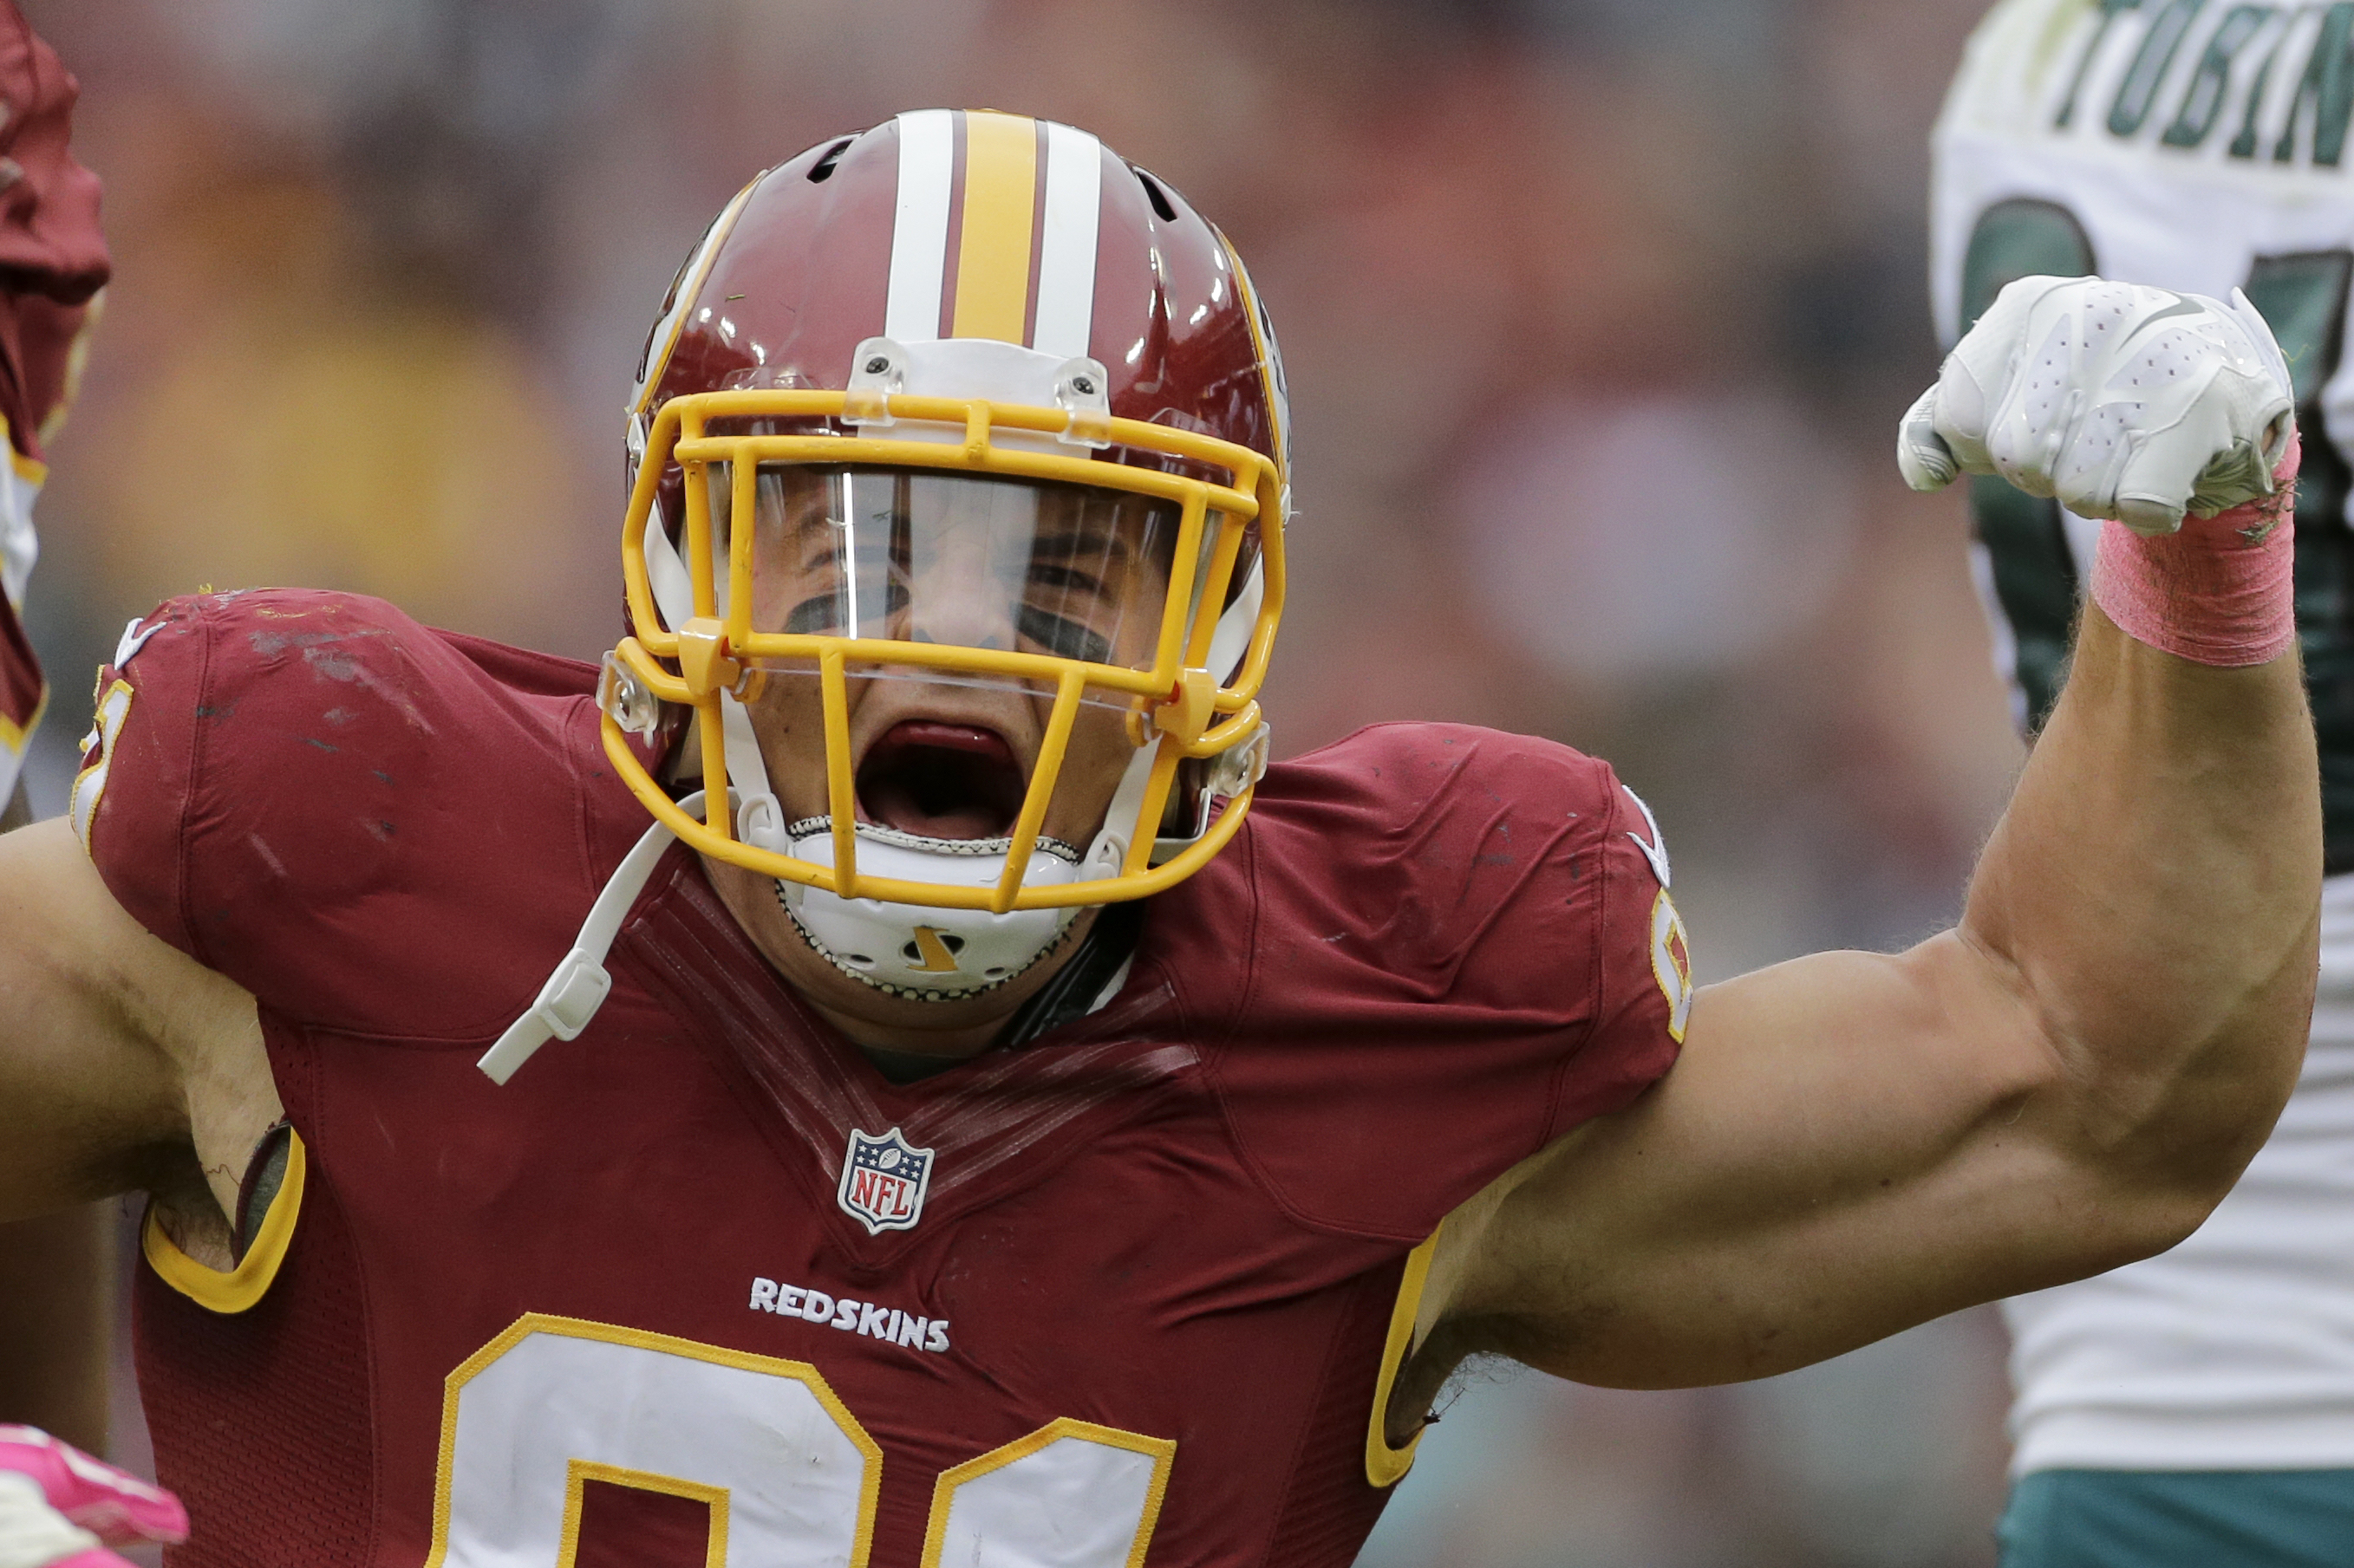 Ryan Kerrigan hopes to play after bye week following surgery on